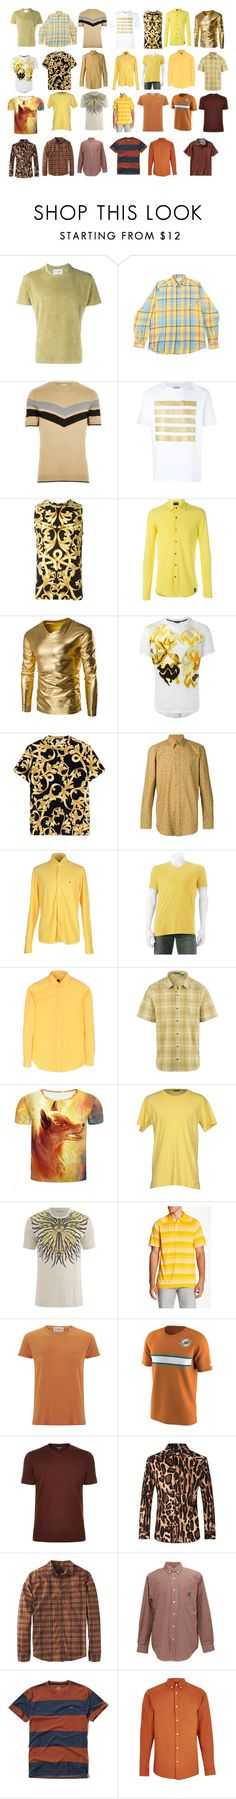 """""""Men's shirts #4"""" by asherthecrimsonfox ❤ liked on Polyvore featuring Our Legacy, tuktuk, River Island, Palm Angels, Versace, Drumohr, Ann Demeulemeester, Givenchy, SONRISA and Urban Pipeline"""